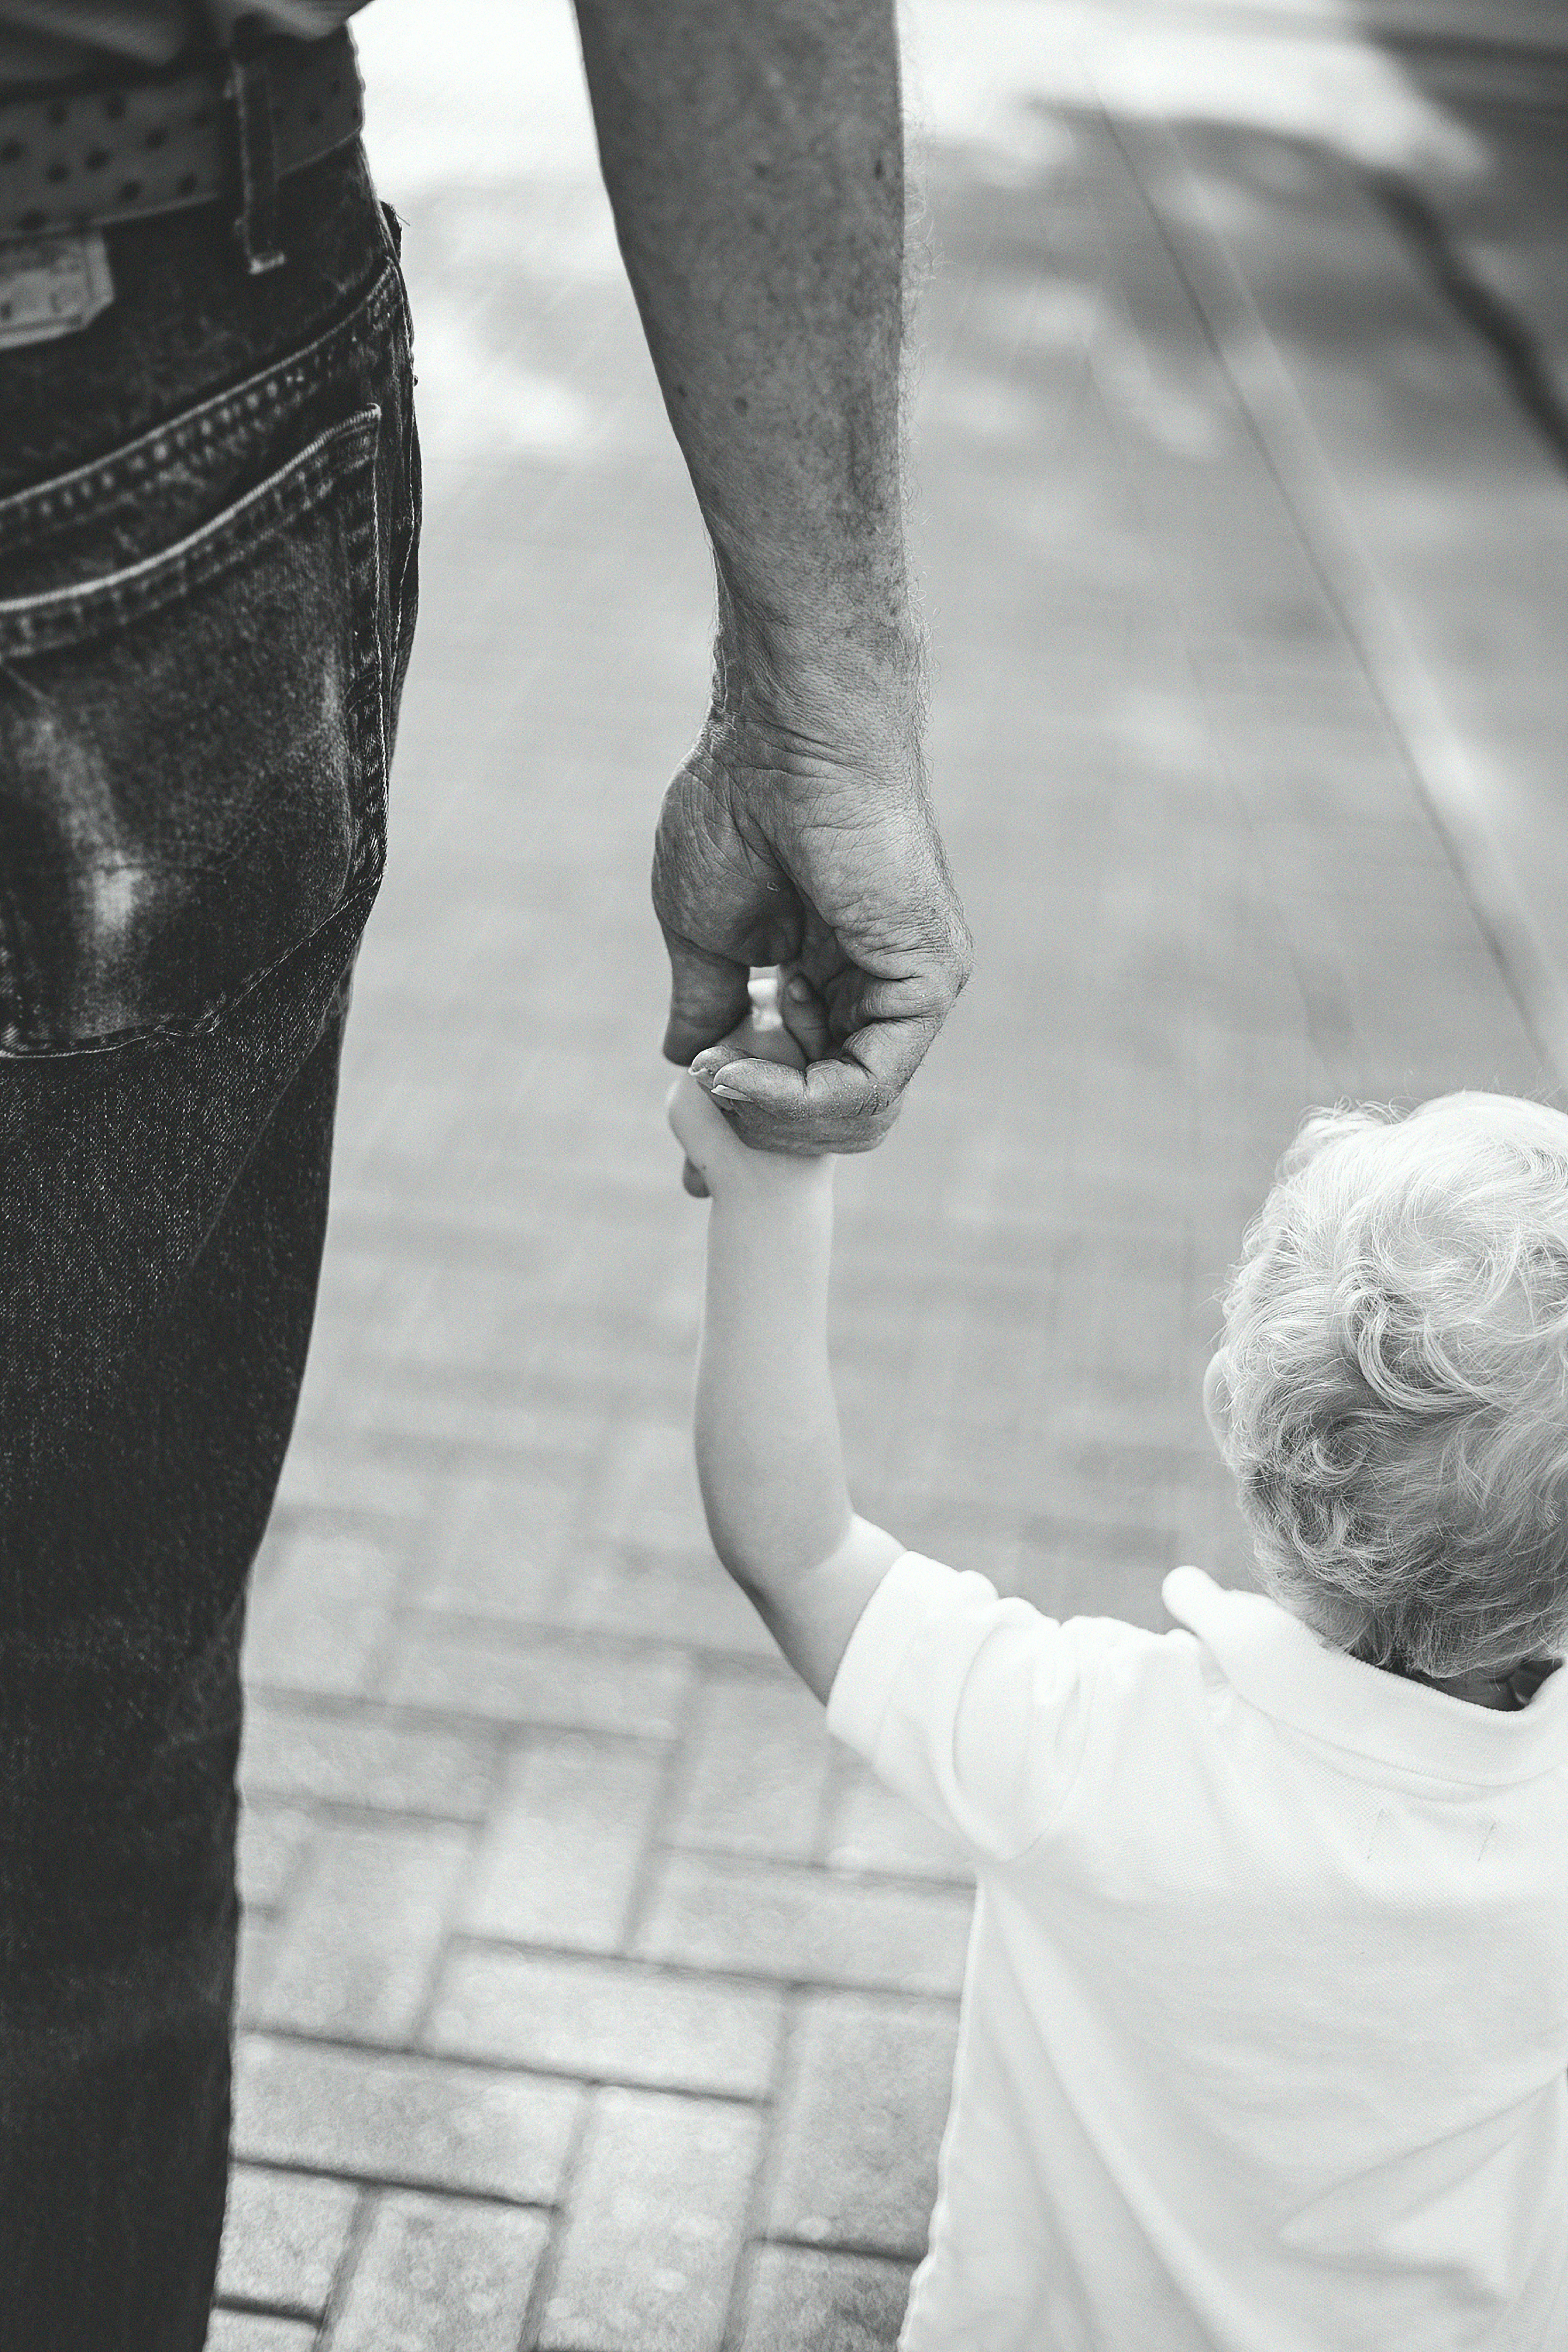 Black and white of a father's hand holding his young son's hand, shown from behind